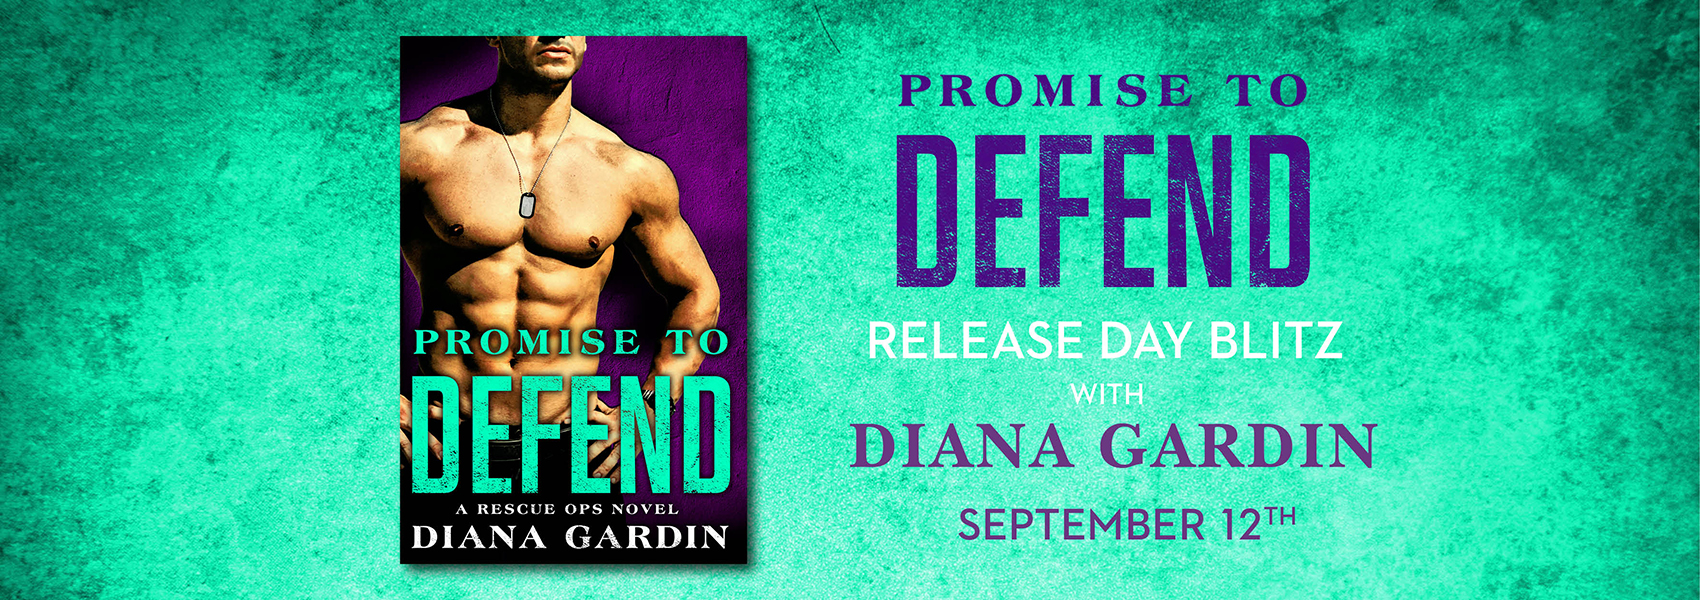 win 1 of 15 free ebook downloads of Promise to Defend!